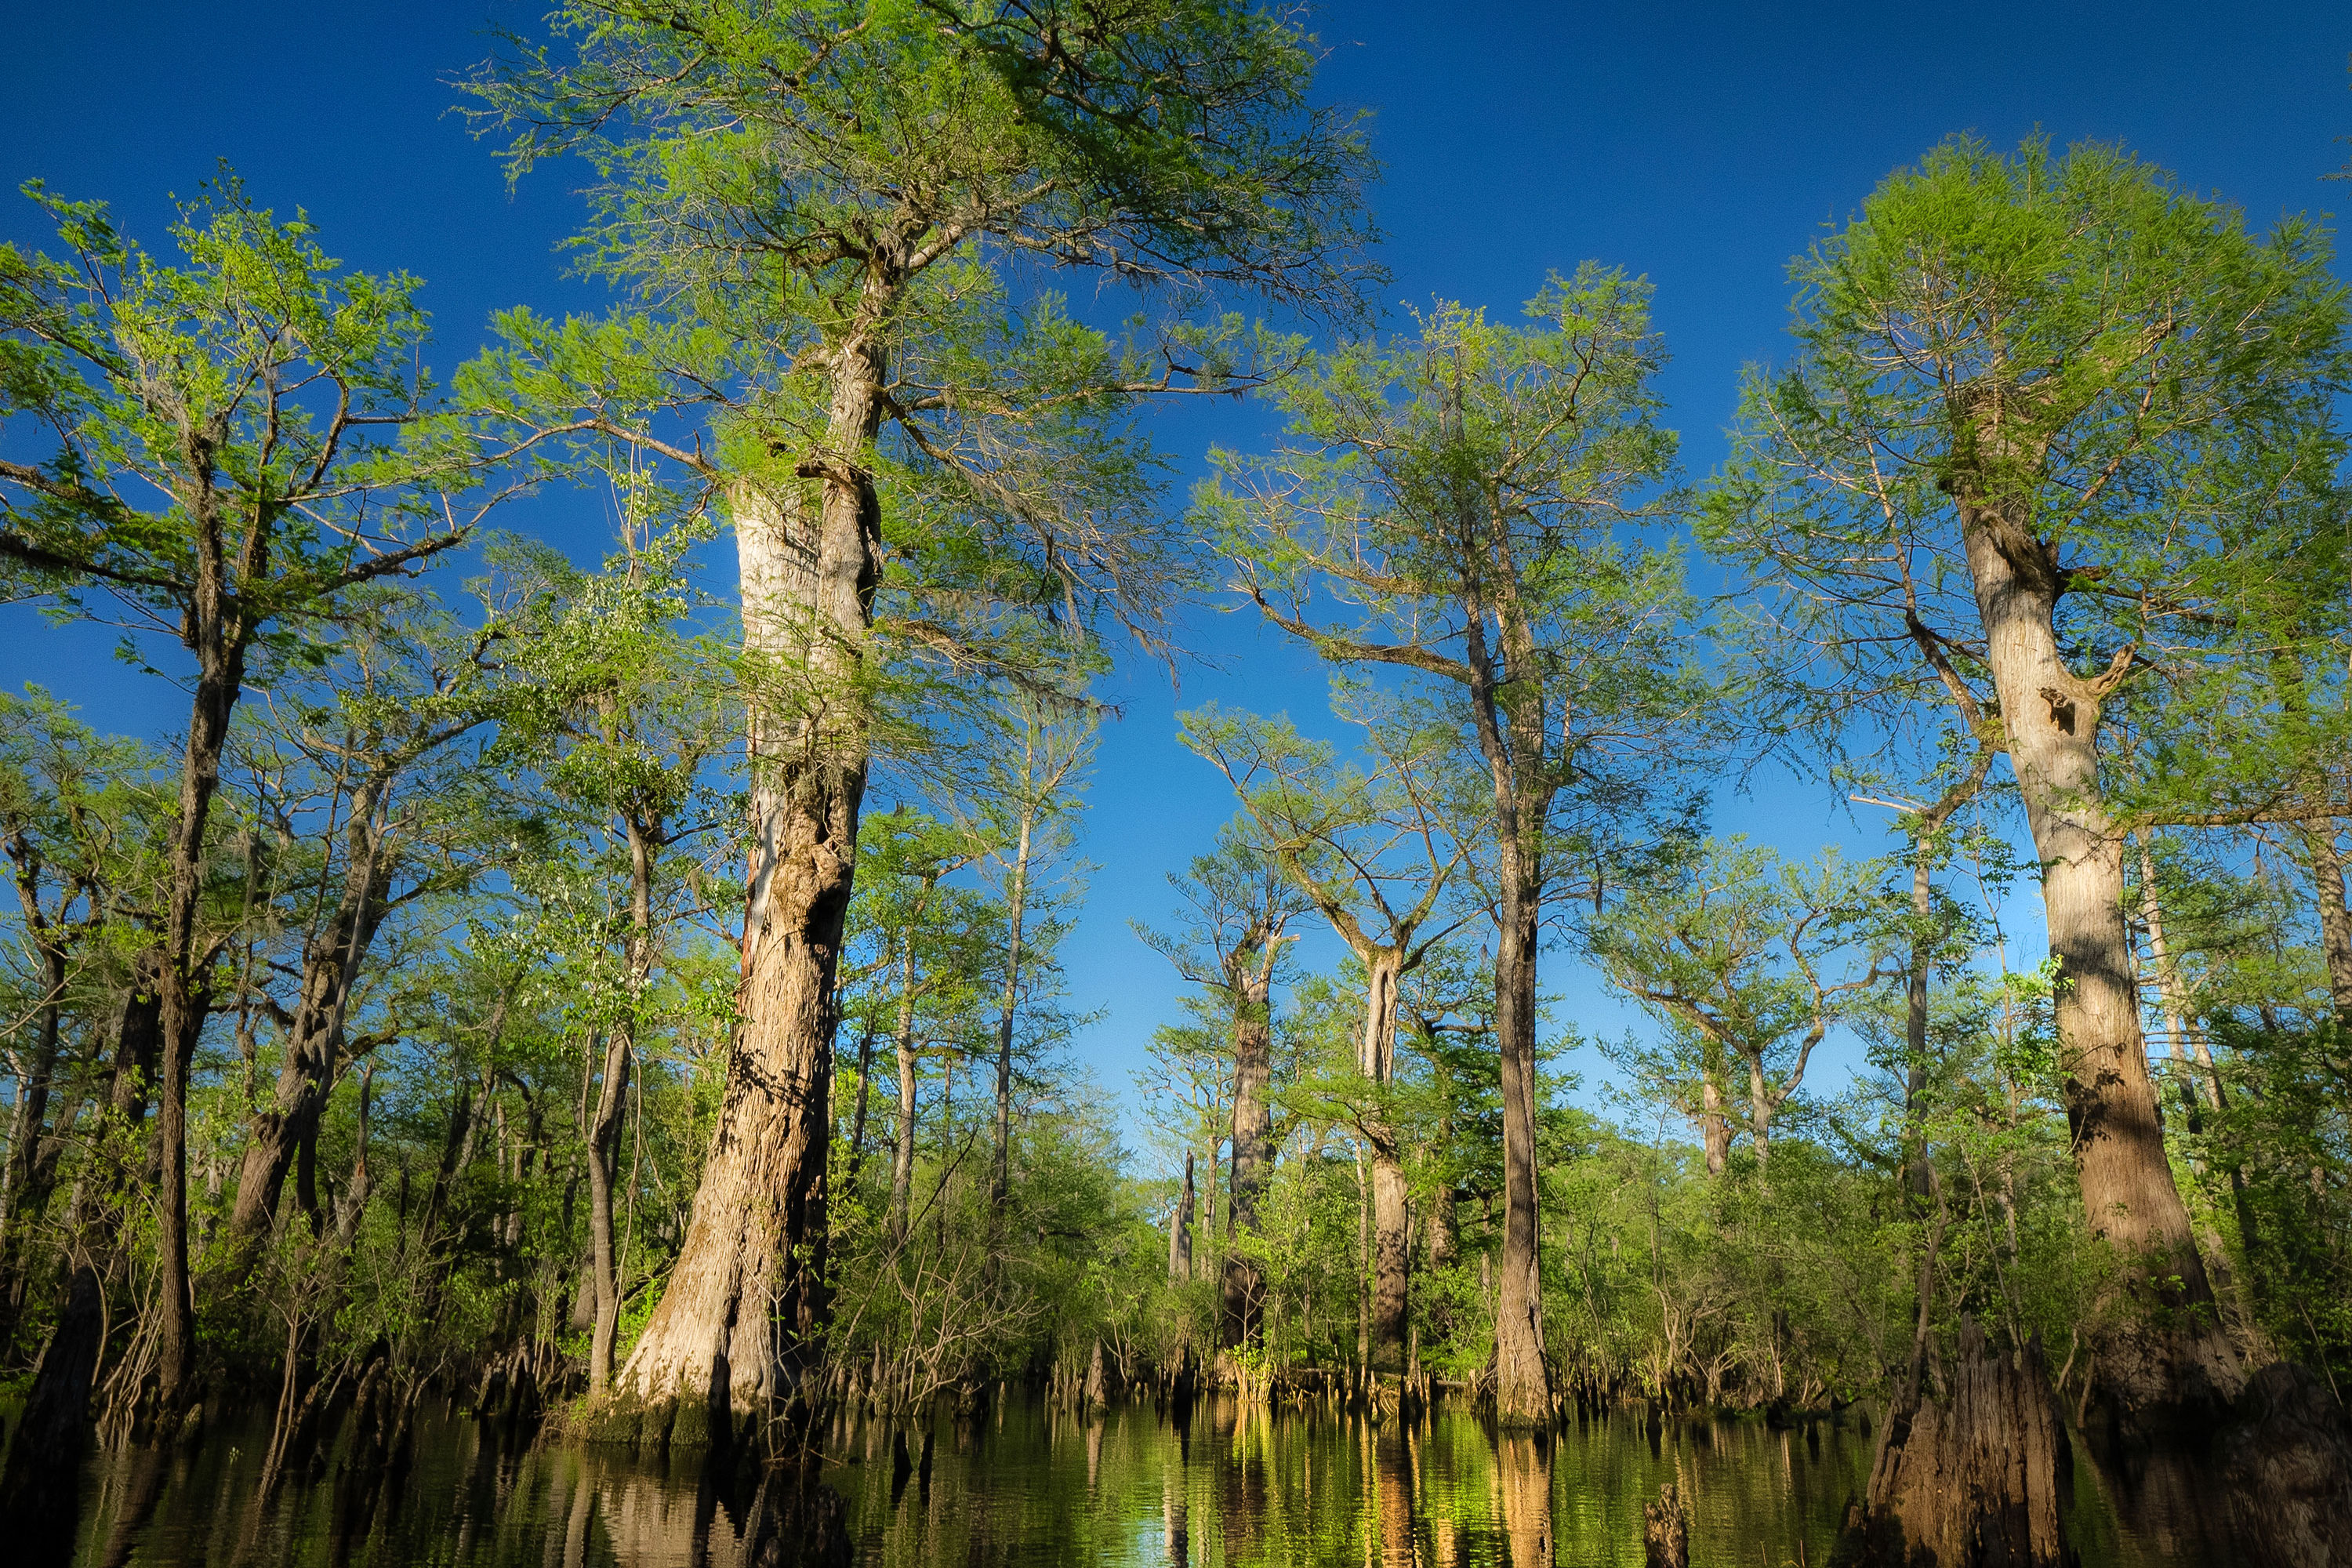 Scientists Discover Tree Older Than Christianity in North Carolina Swamp